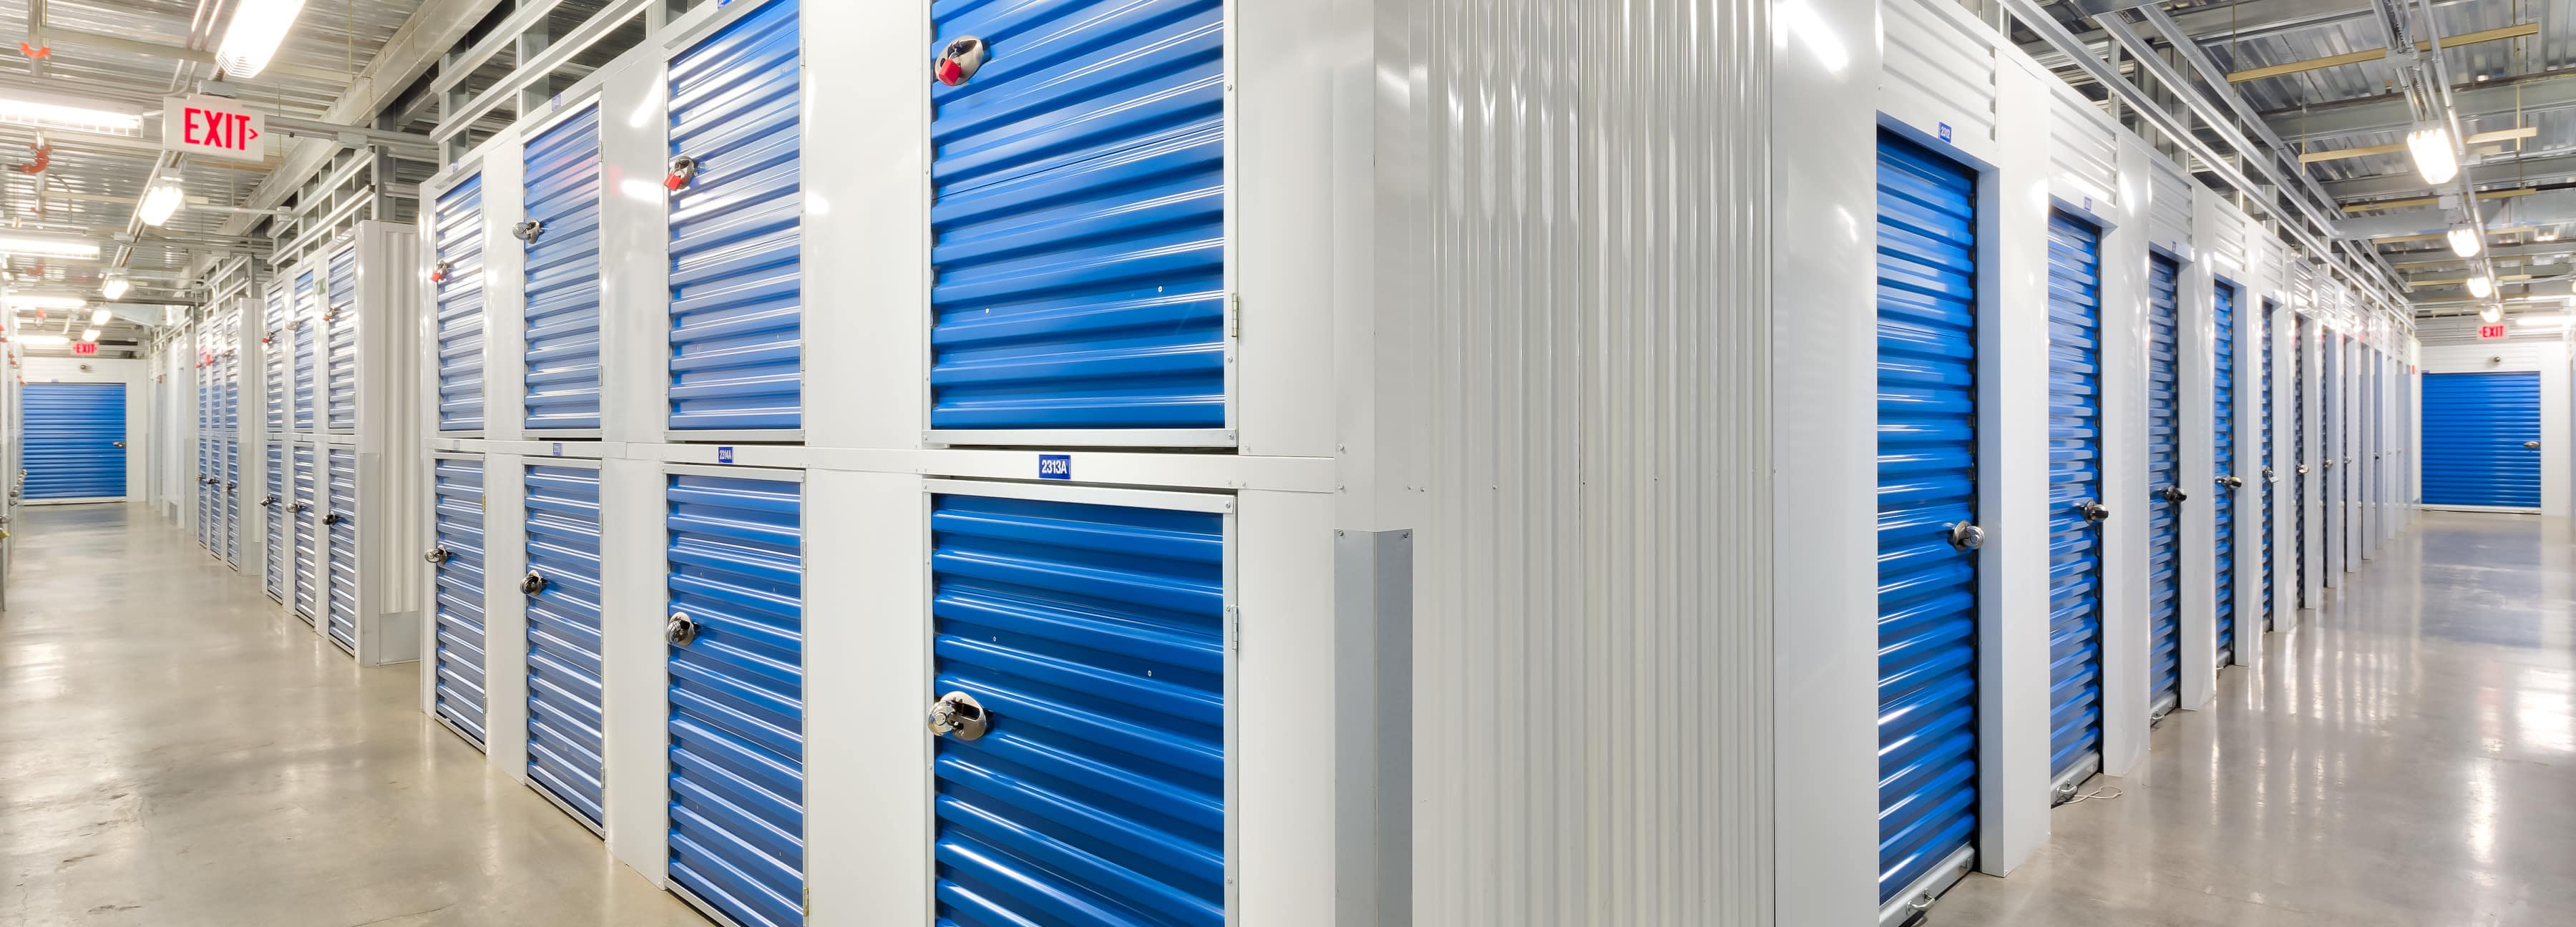 Learn more about Hawai'i Self Storage in Hawaii